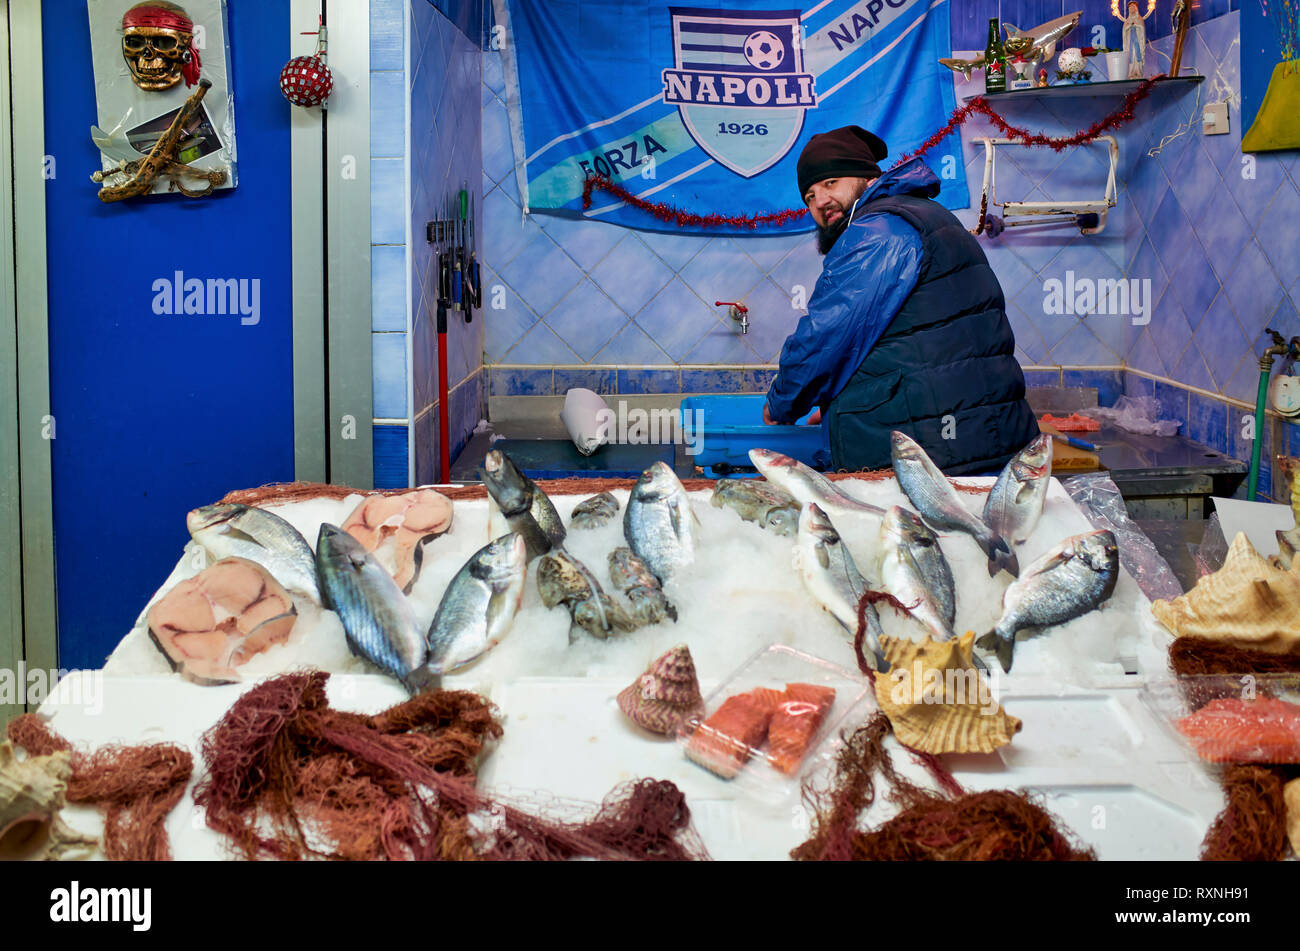 Naples Campania Italy. Fishmonger's at Quartieri Spagnoli(Spanish Quarters), a part of the city ofNaplesinItaly. It is a poor area, suffering from - Stock Image